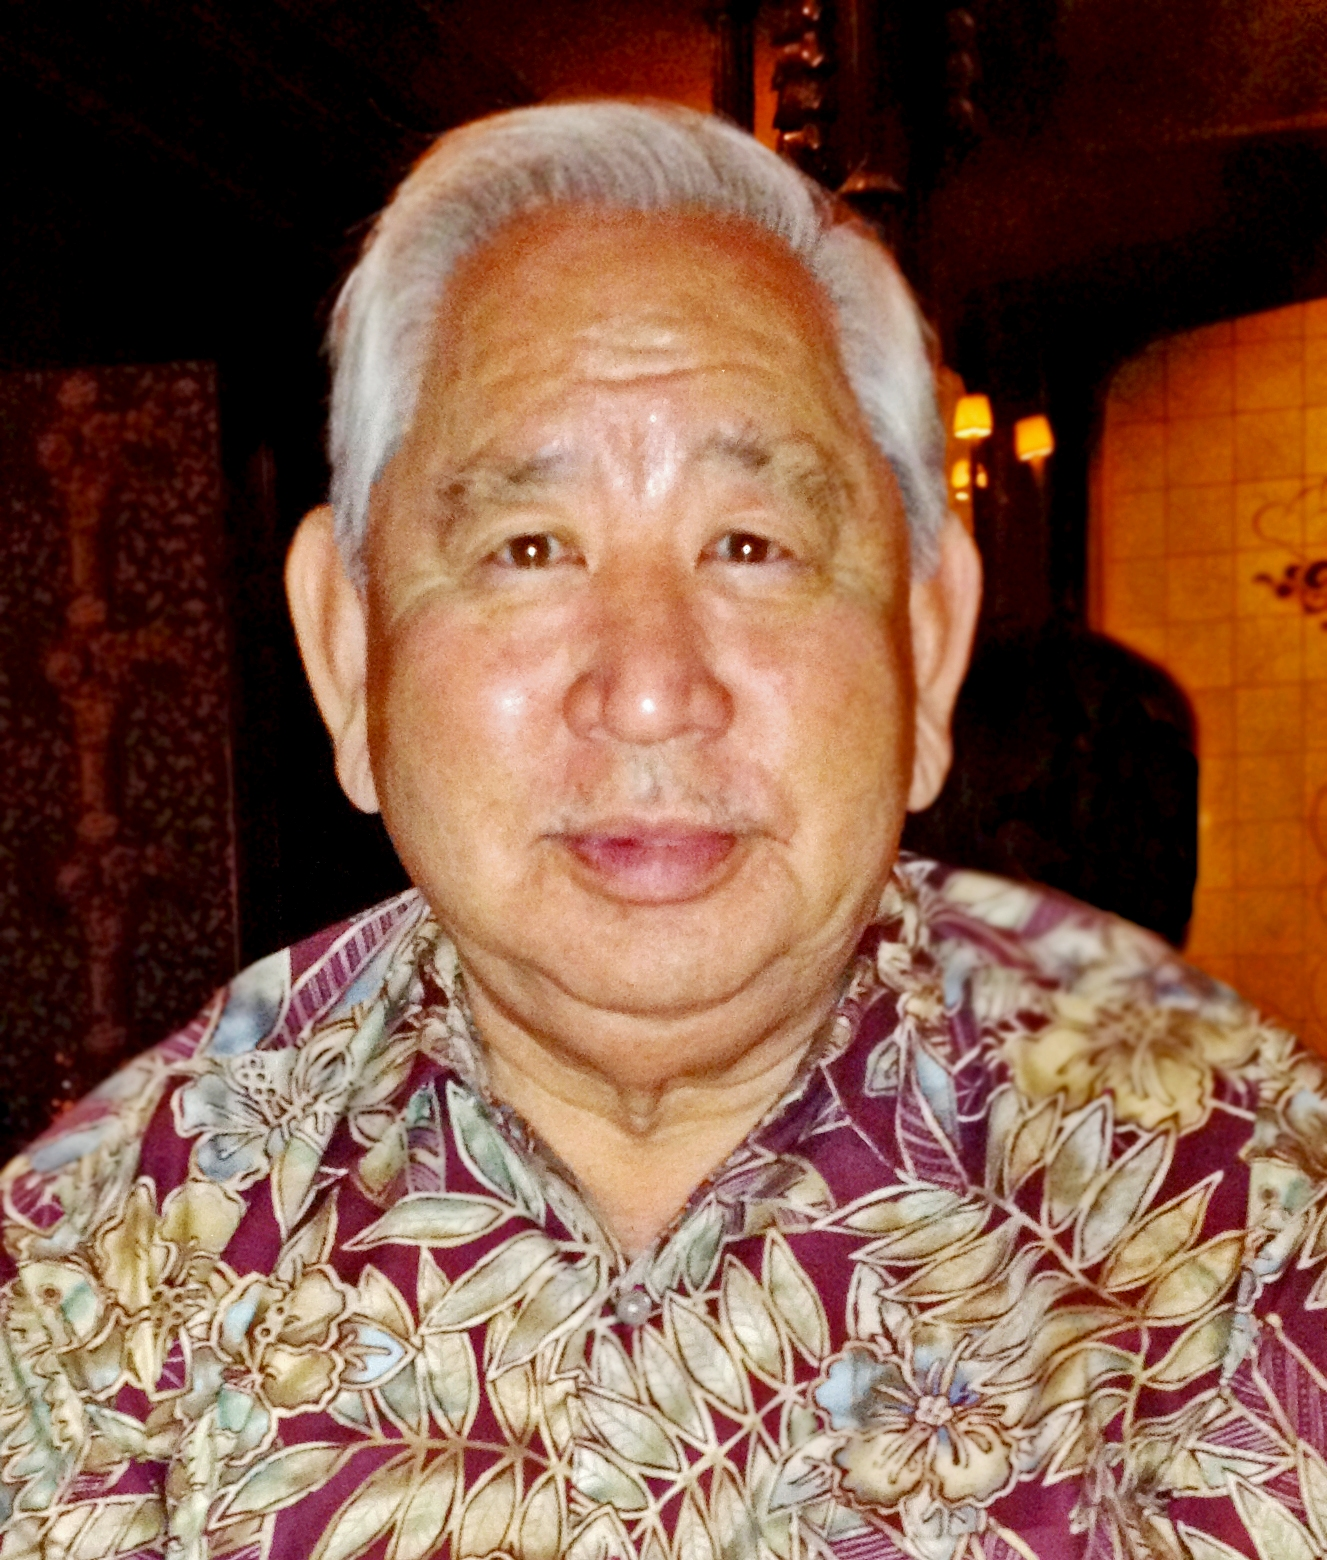 REGINALD Y. KAMIHARA